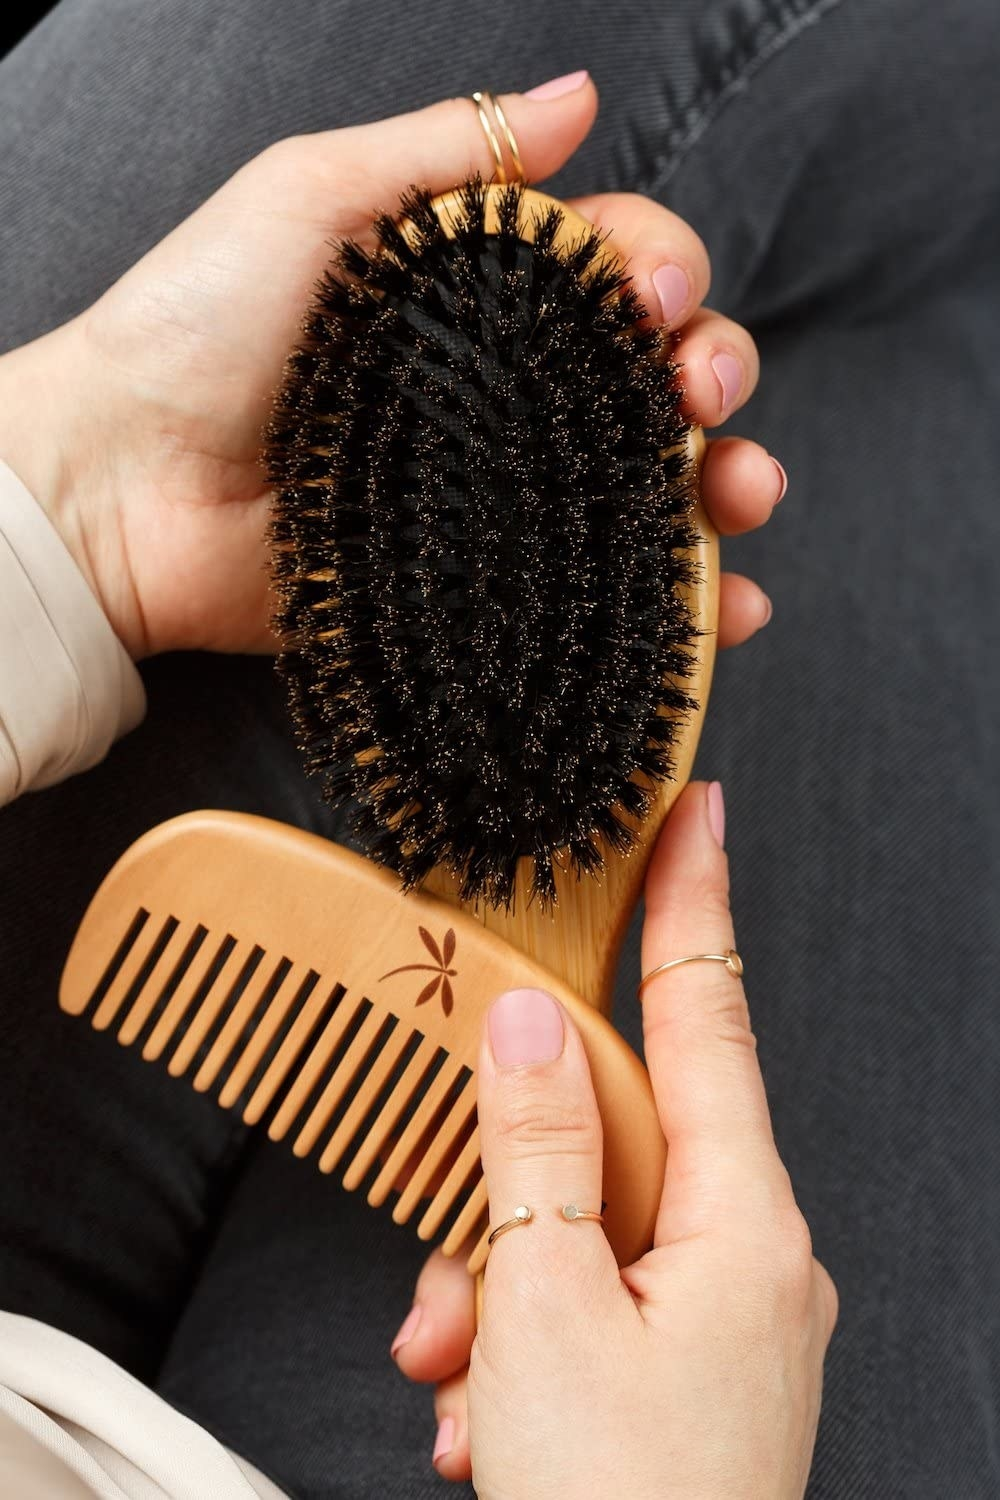 person holding boar bristle brush and wooden comb